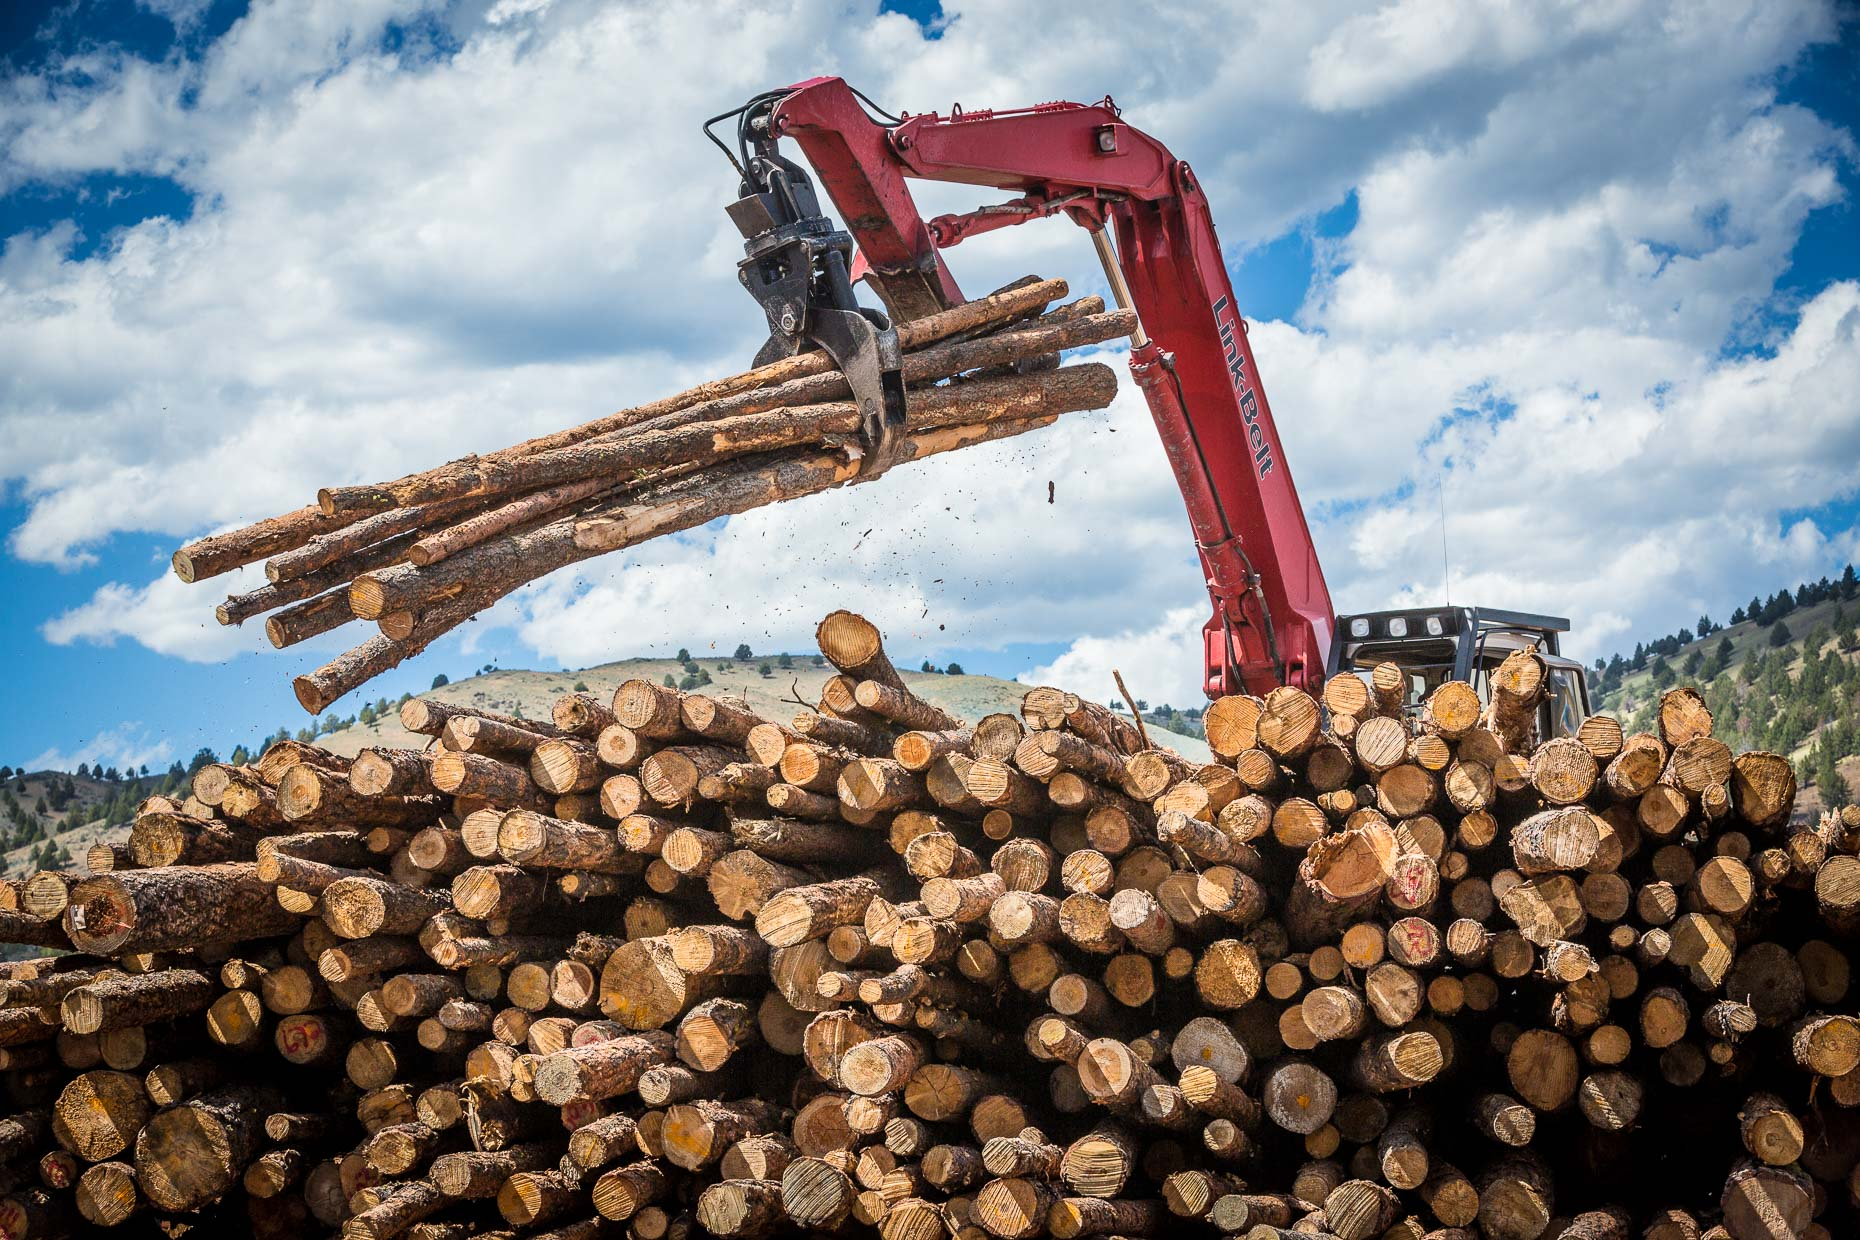 Machine with grip picks up logs from stack of logs to move into processing, Malheur Lumber Company mill in John Day, Oregon by David Zaitz.